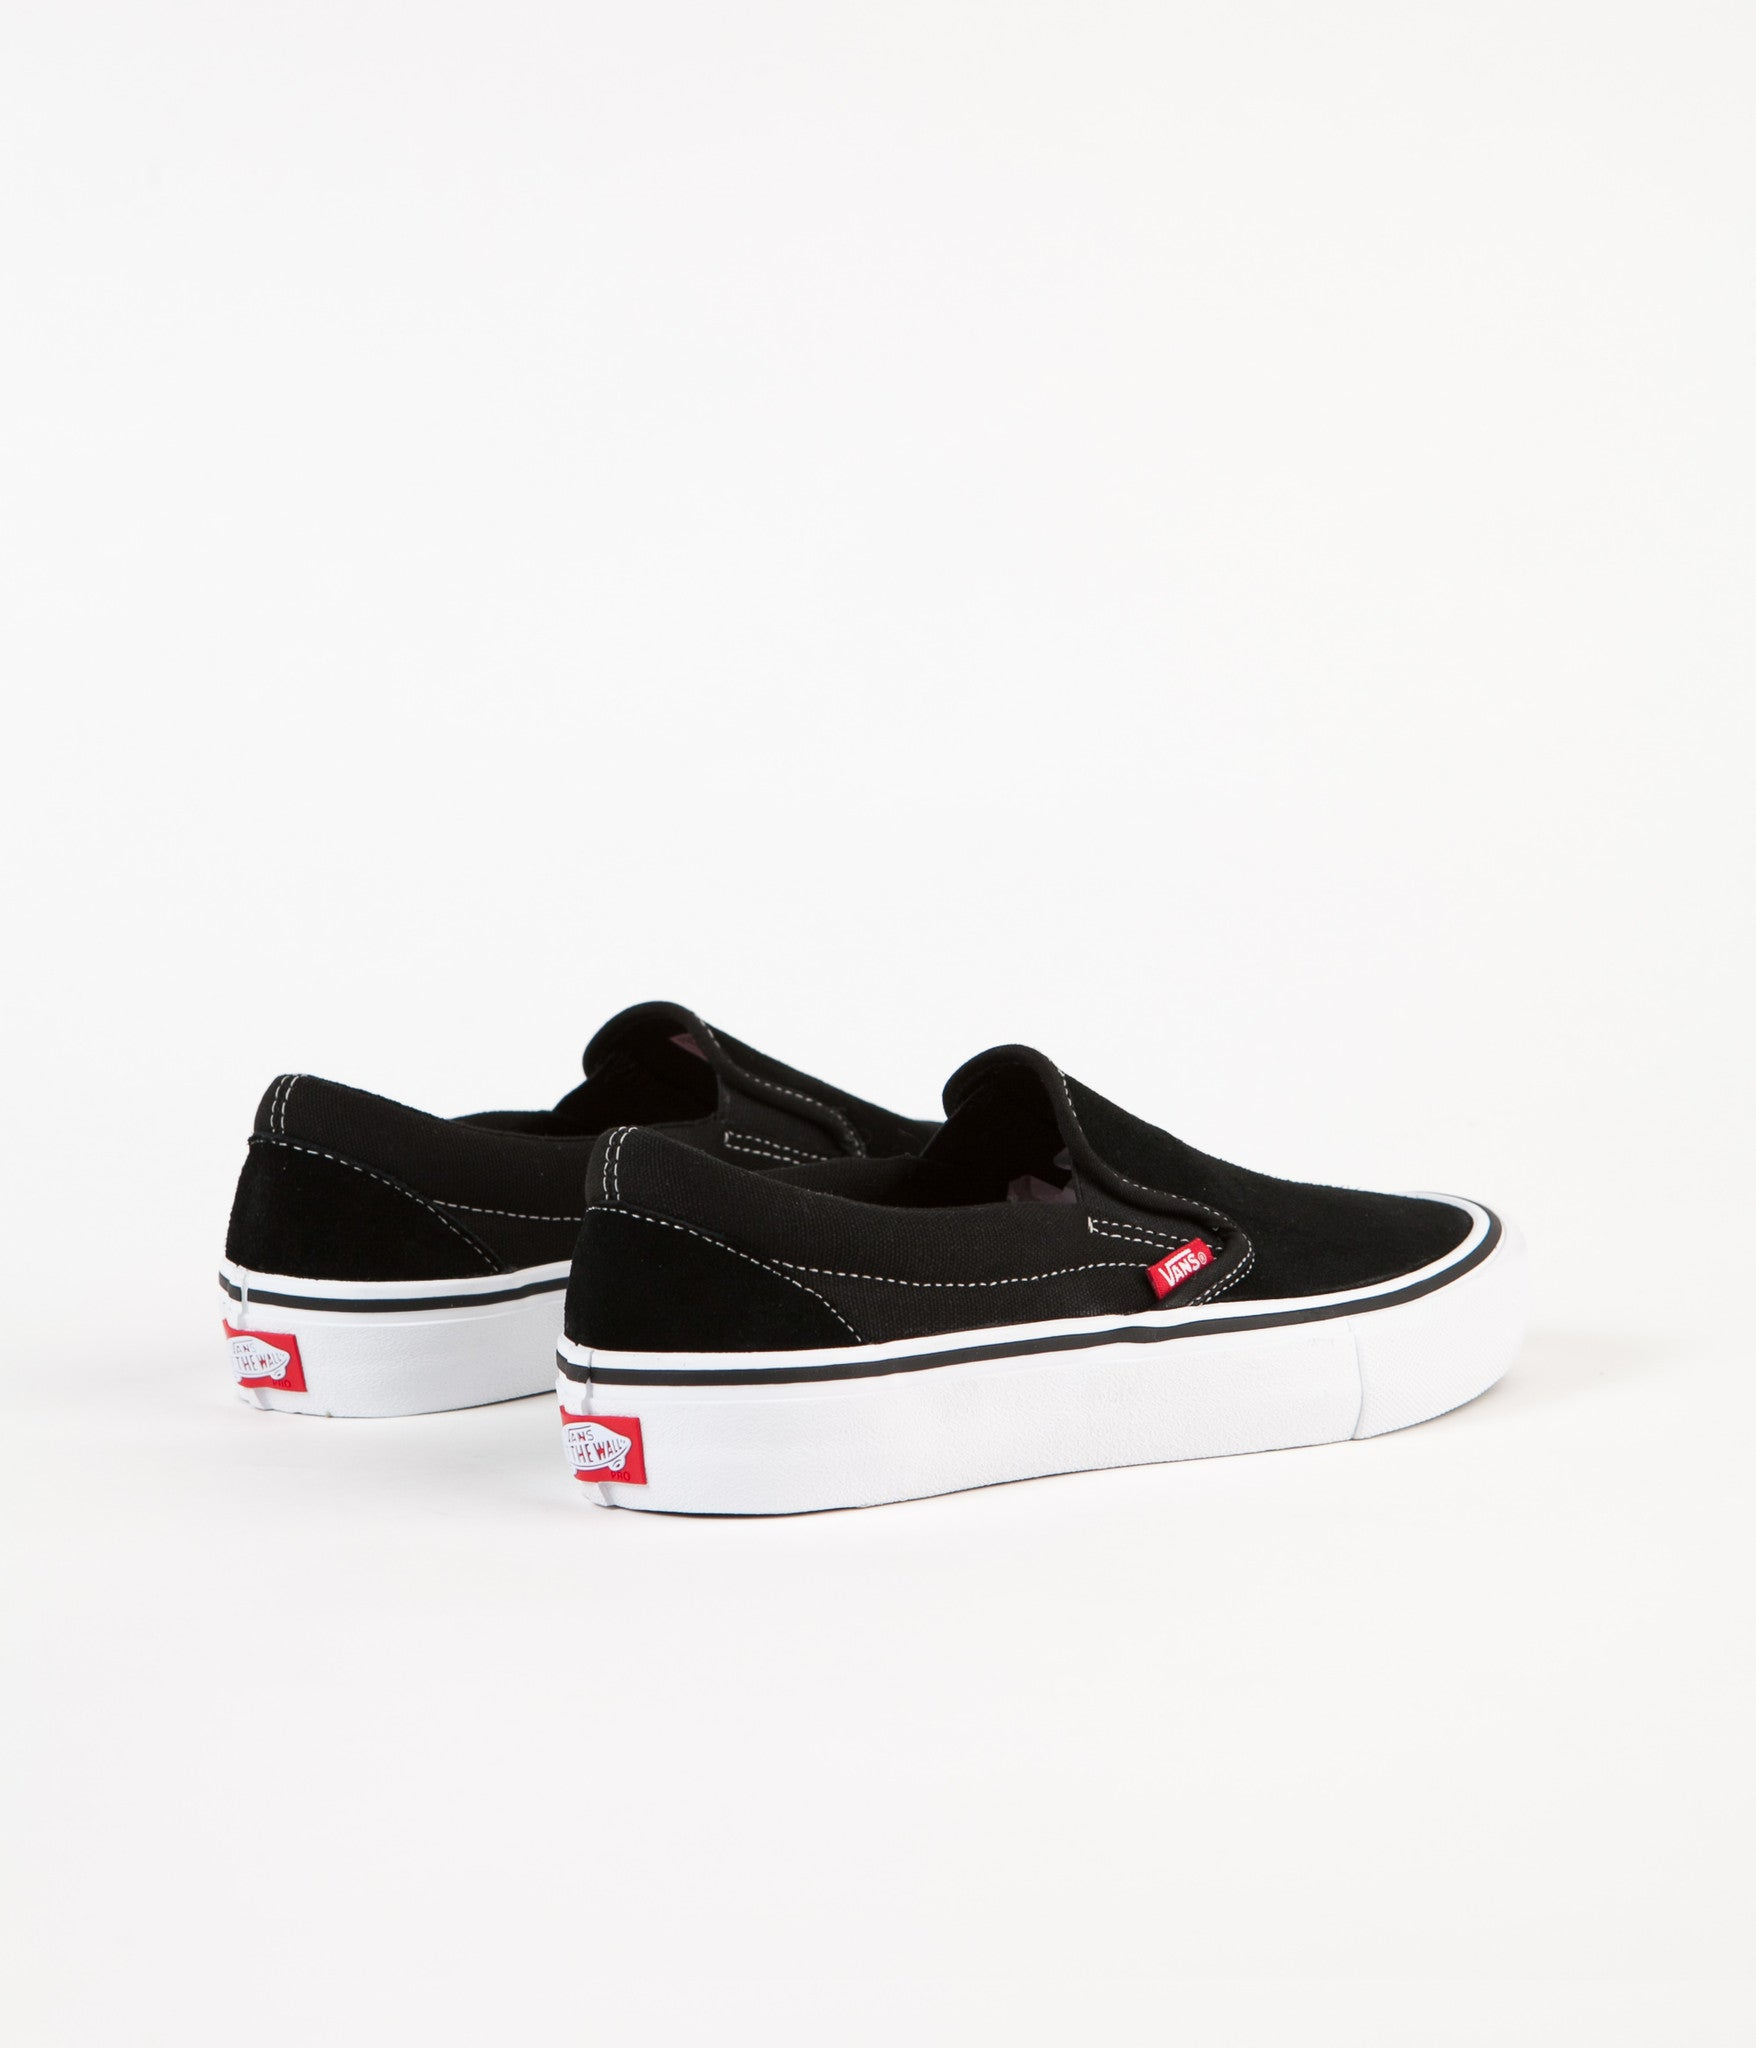 5d45df88ad Vans Slip On Pro Shoes - Black   White   Gum